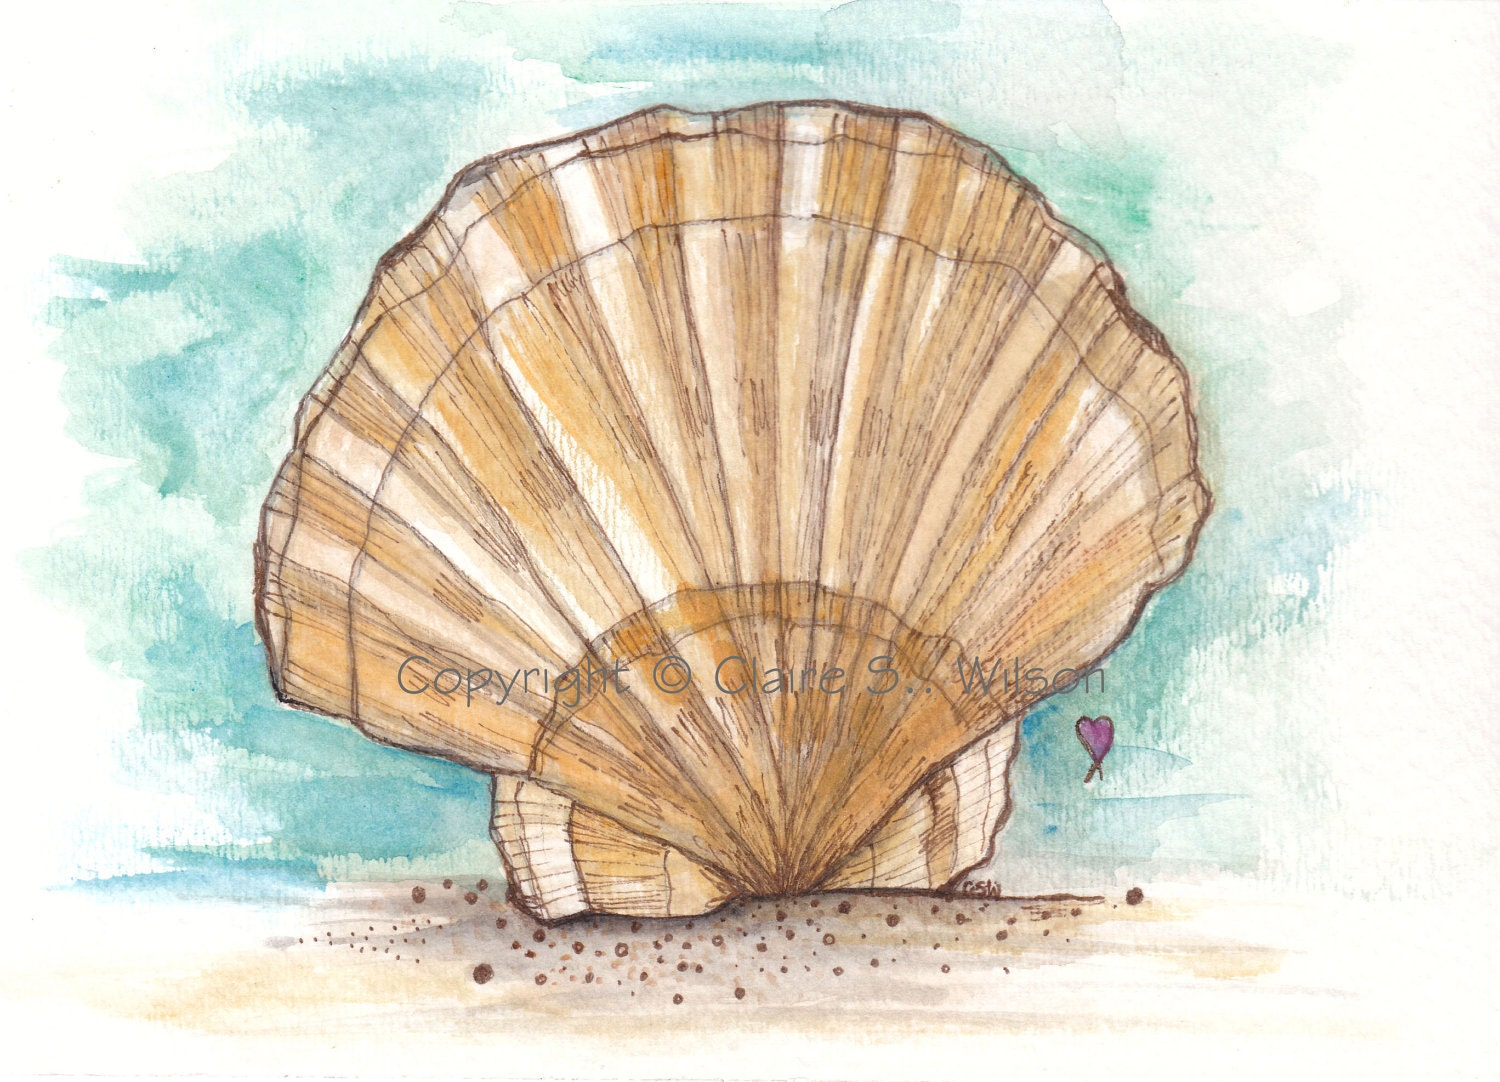 Seashell Art Print 8x10